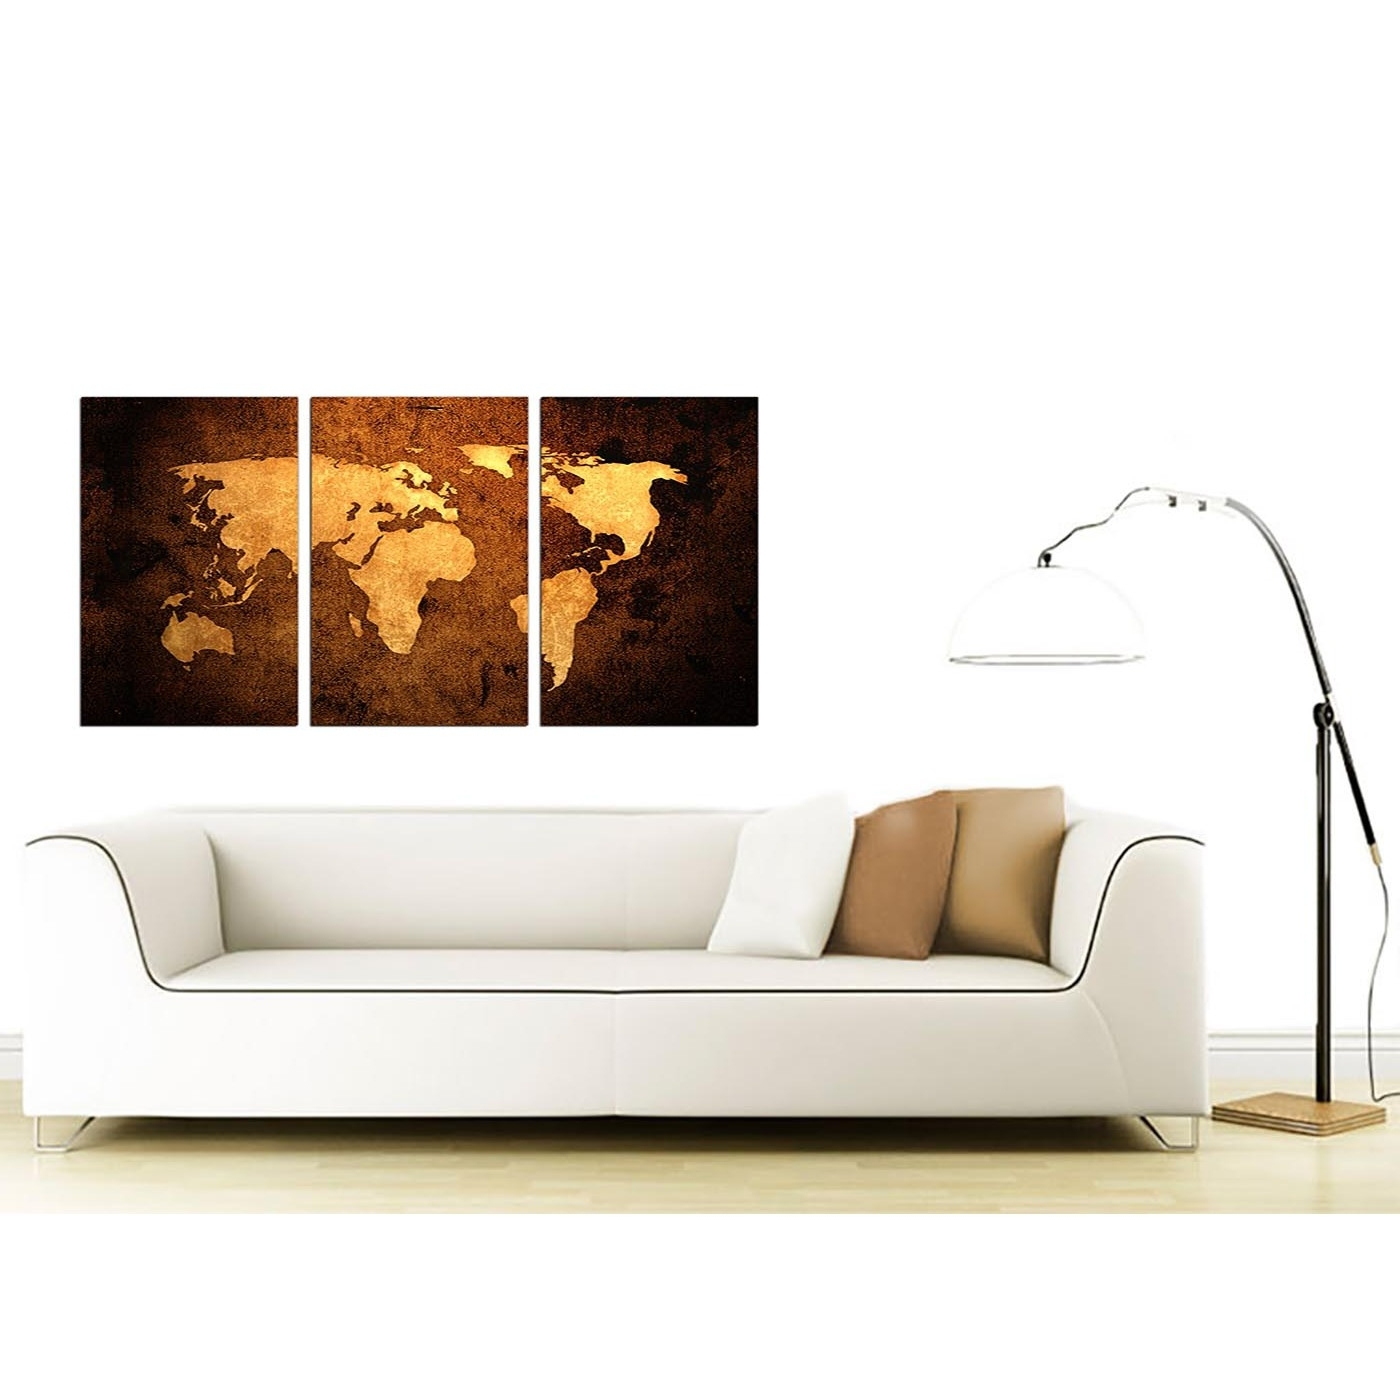 Trendy Canvas Wall Art Sets Pertaining To Vintage World Map Canvas Wall Art Set Of 3 For Your Bedroom (View 13 of 15)